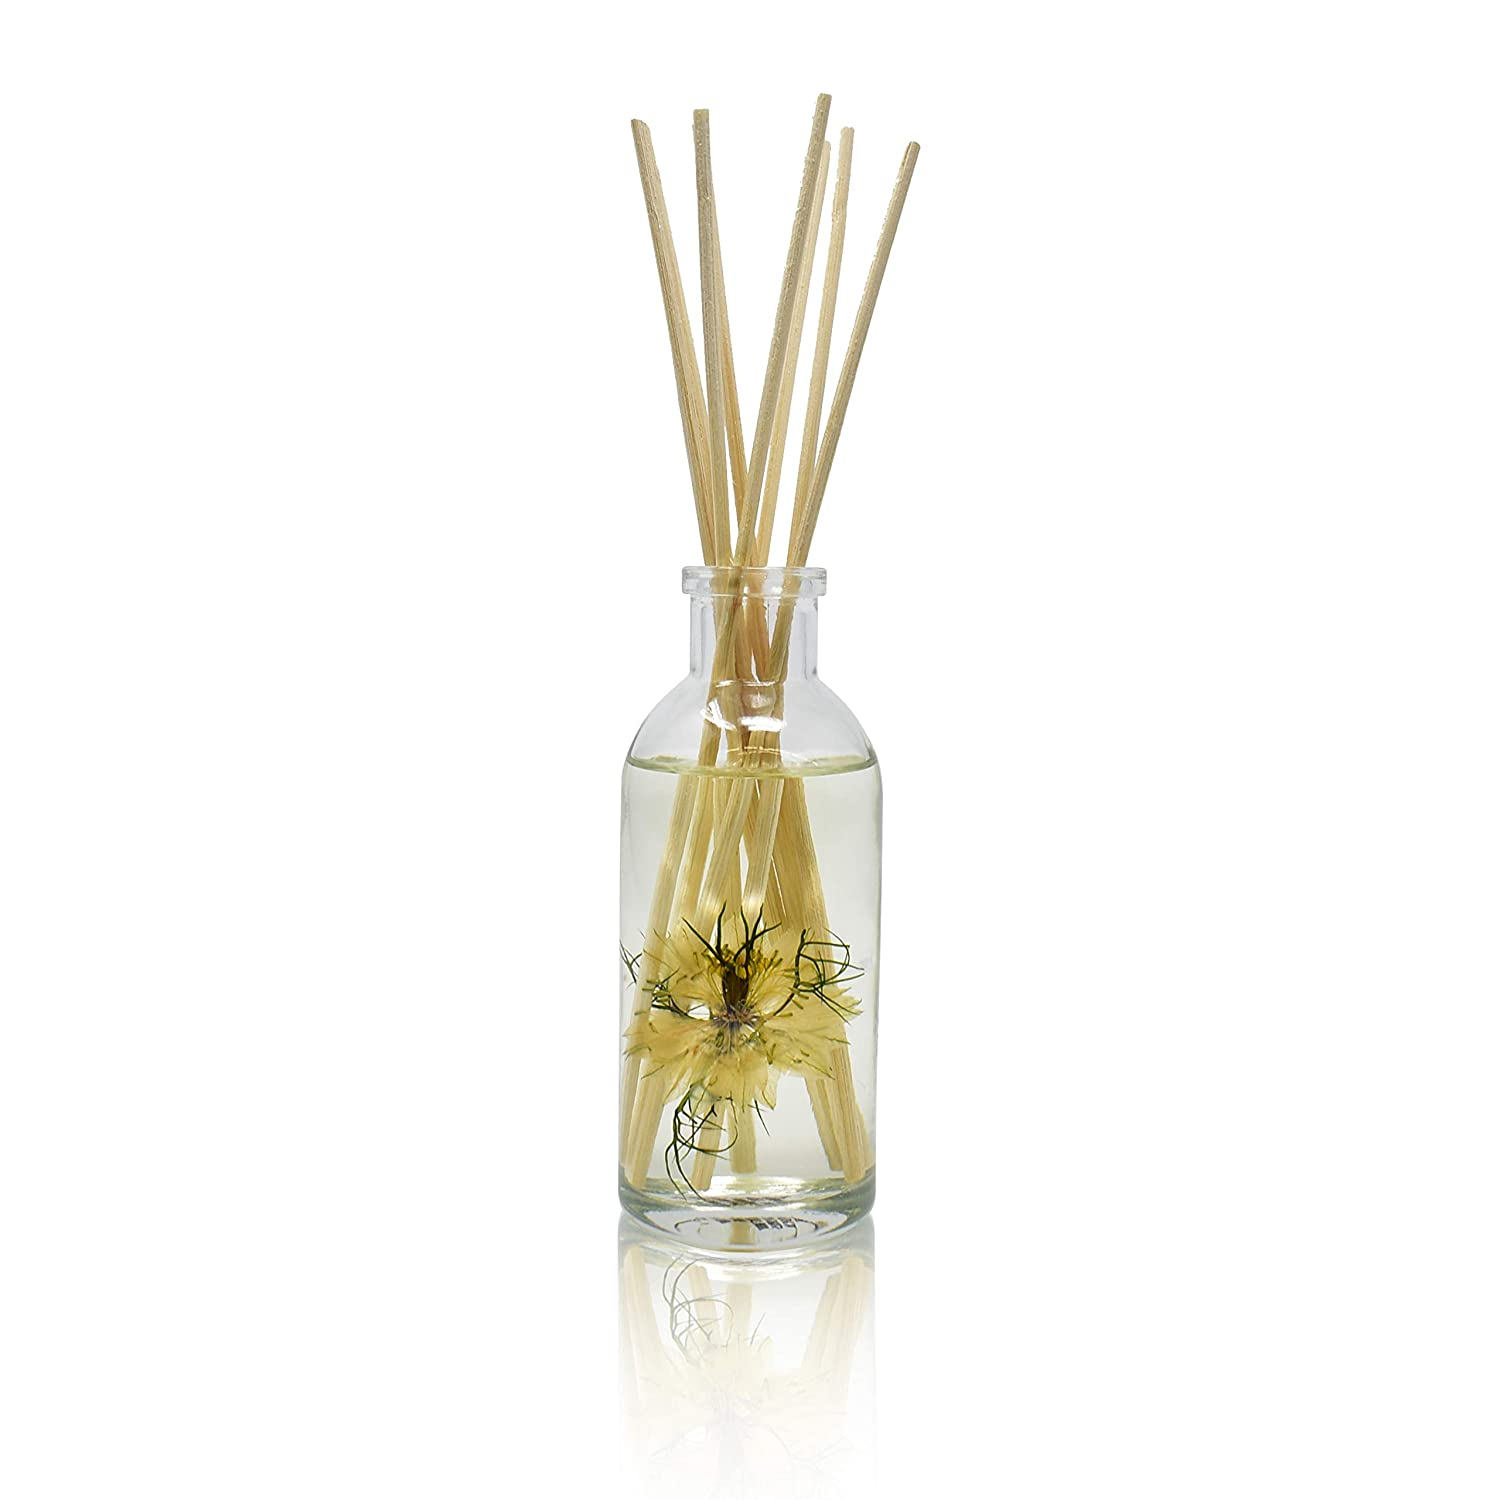 Birchwood /& Sandalwood Urban Naturals Vanilla Woods Reed Diffuser Scent Sticks Gift Set Light Woodsy Scent Made with Essential Oils /& Real Botanical Pieces Smoked Vanilla Bean Tonka Bean